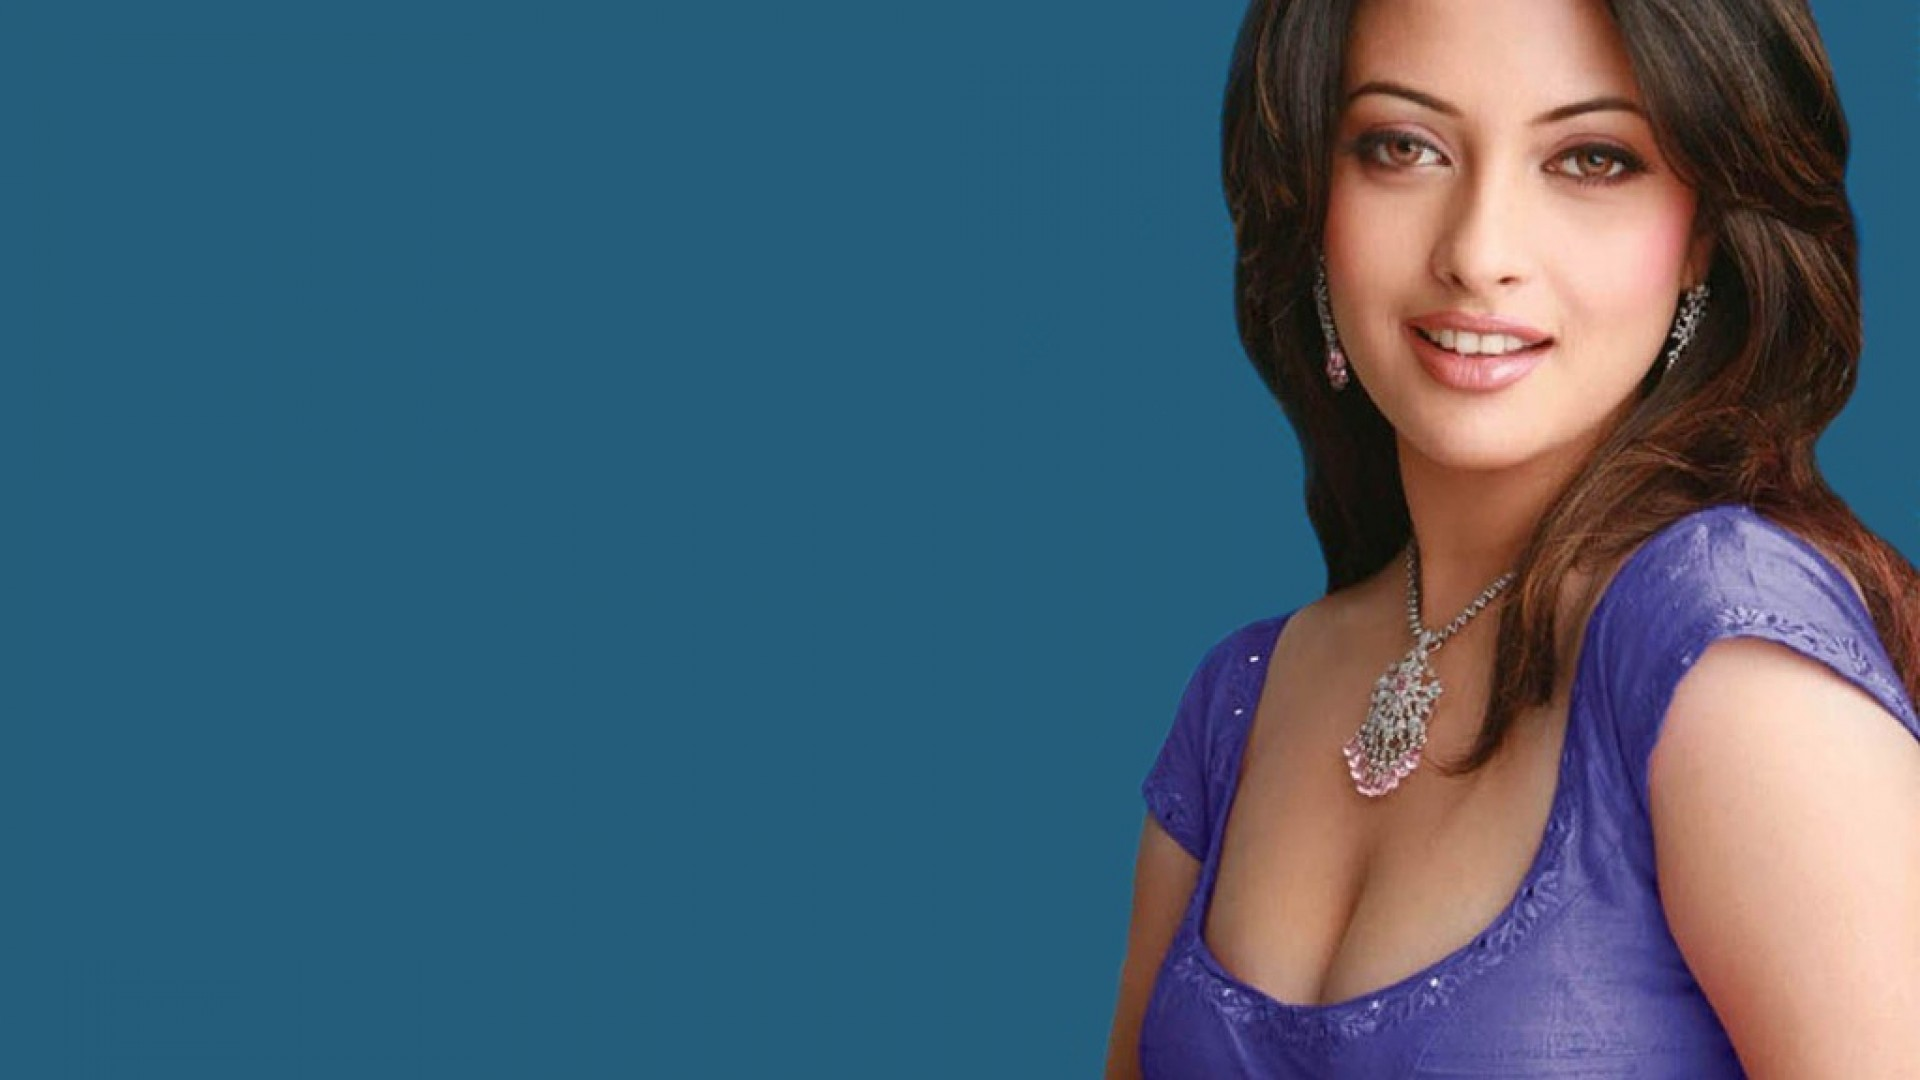 indian actress wallpaper | 1920x1080 | #26139